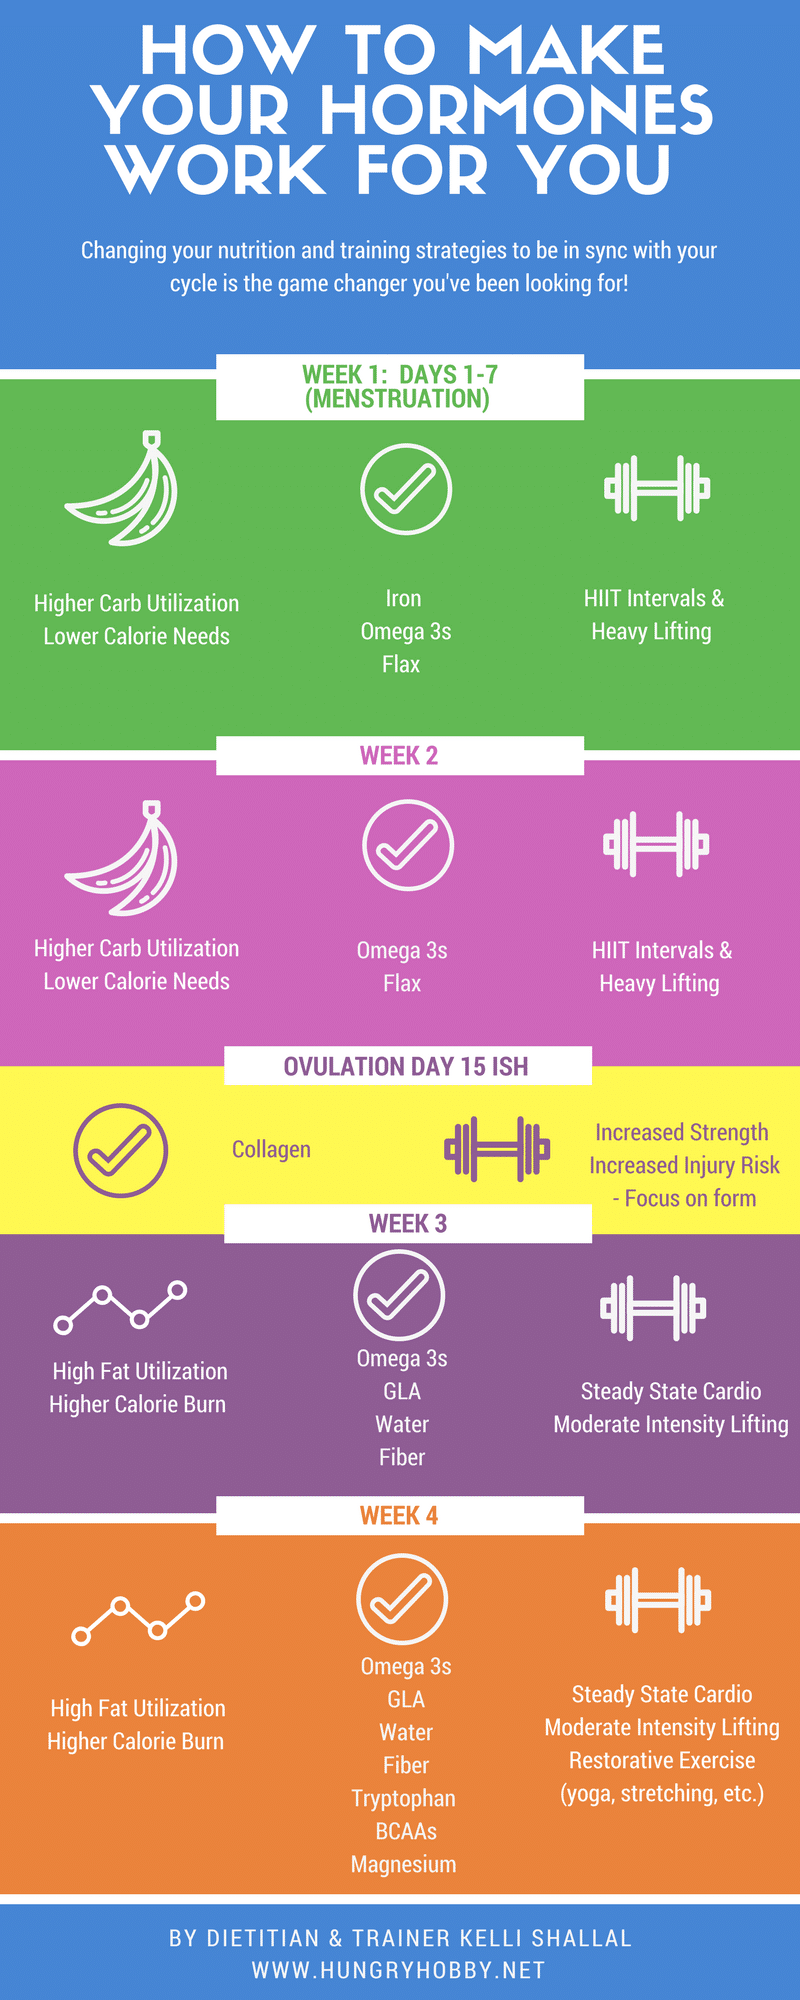 Menstrual Cycle Stages & Appetite, Training, Nutrition Tips